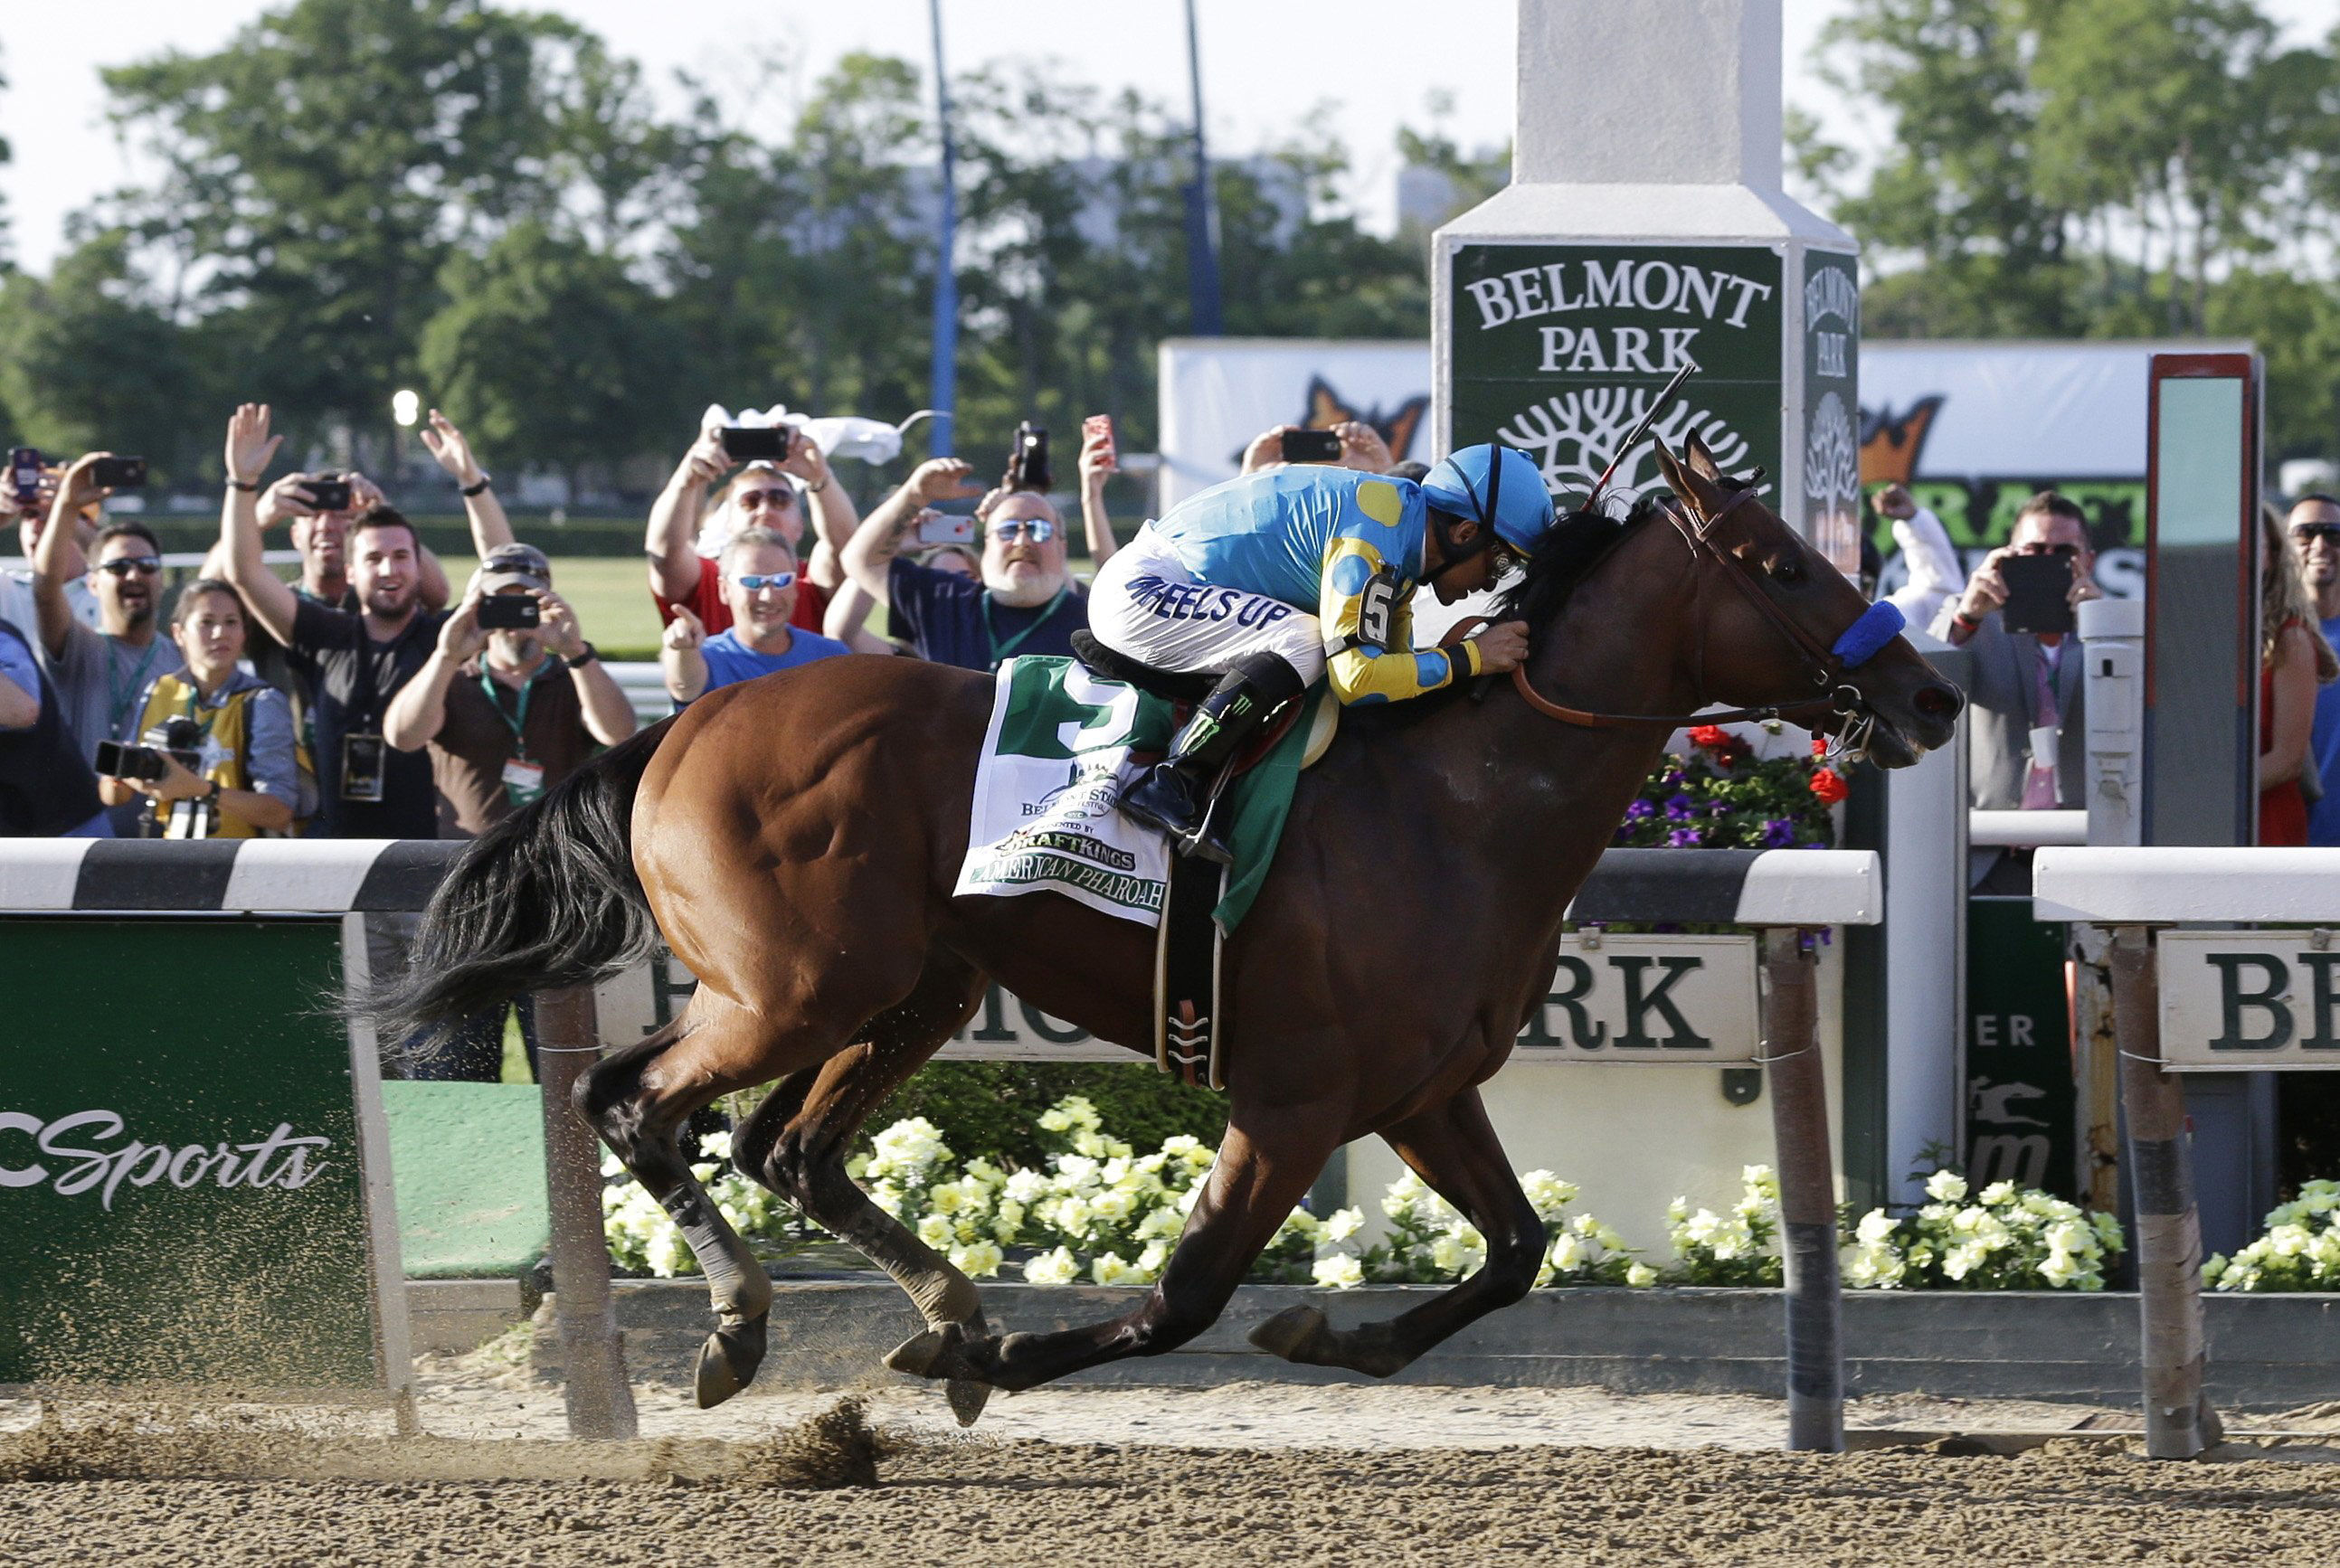 American Pharoah (5) with Victor Espinoza crosses the finish line to win the 147th running of the Belmont Stakes horse race at Belmont Park, June 6, 2015, in Elmont, N.Y.